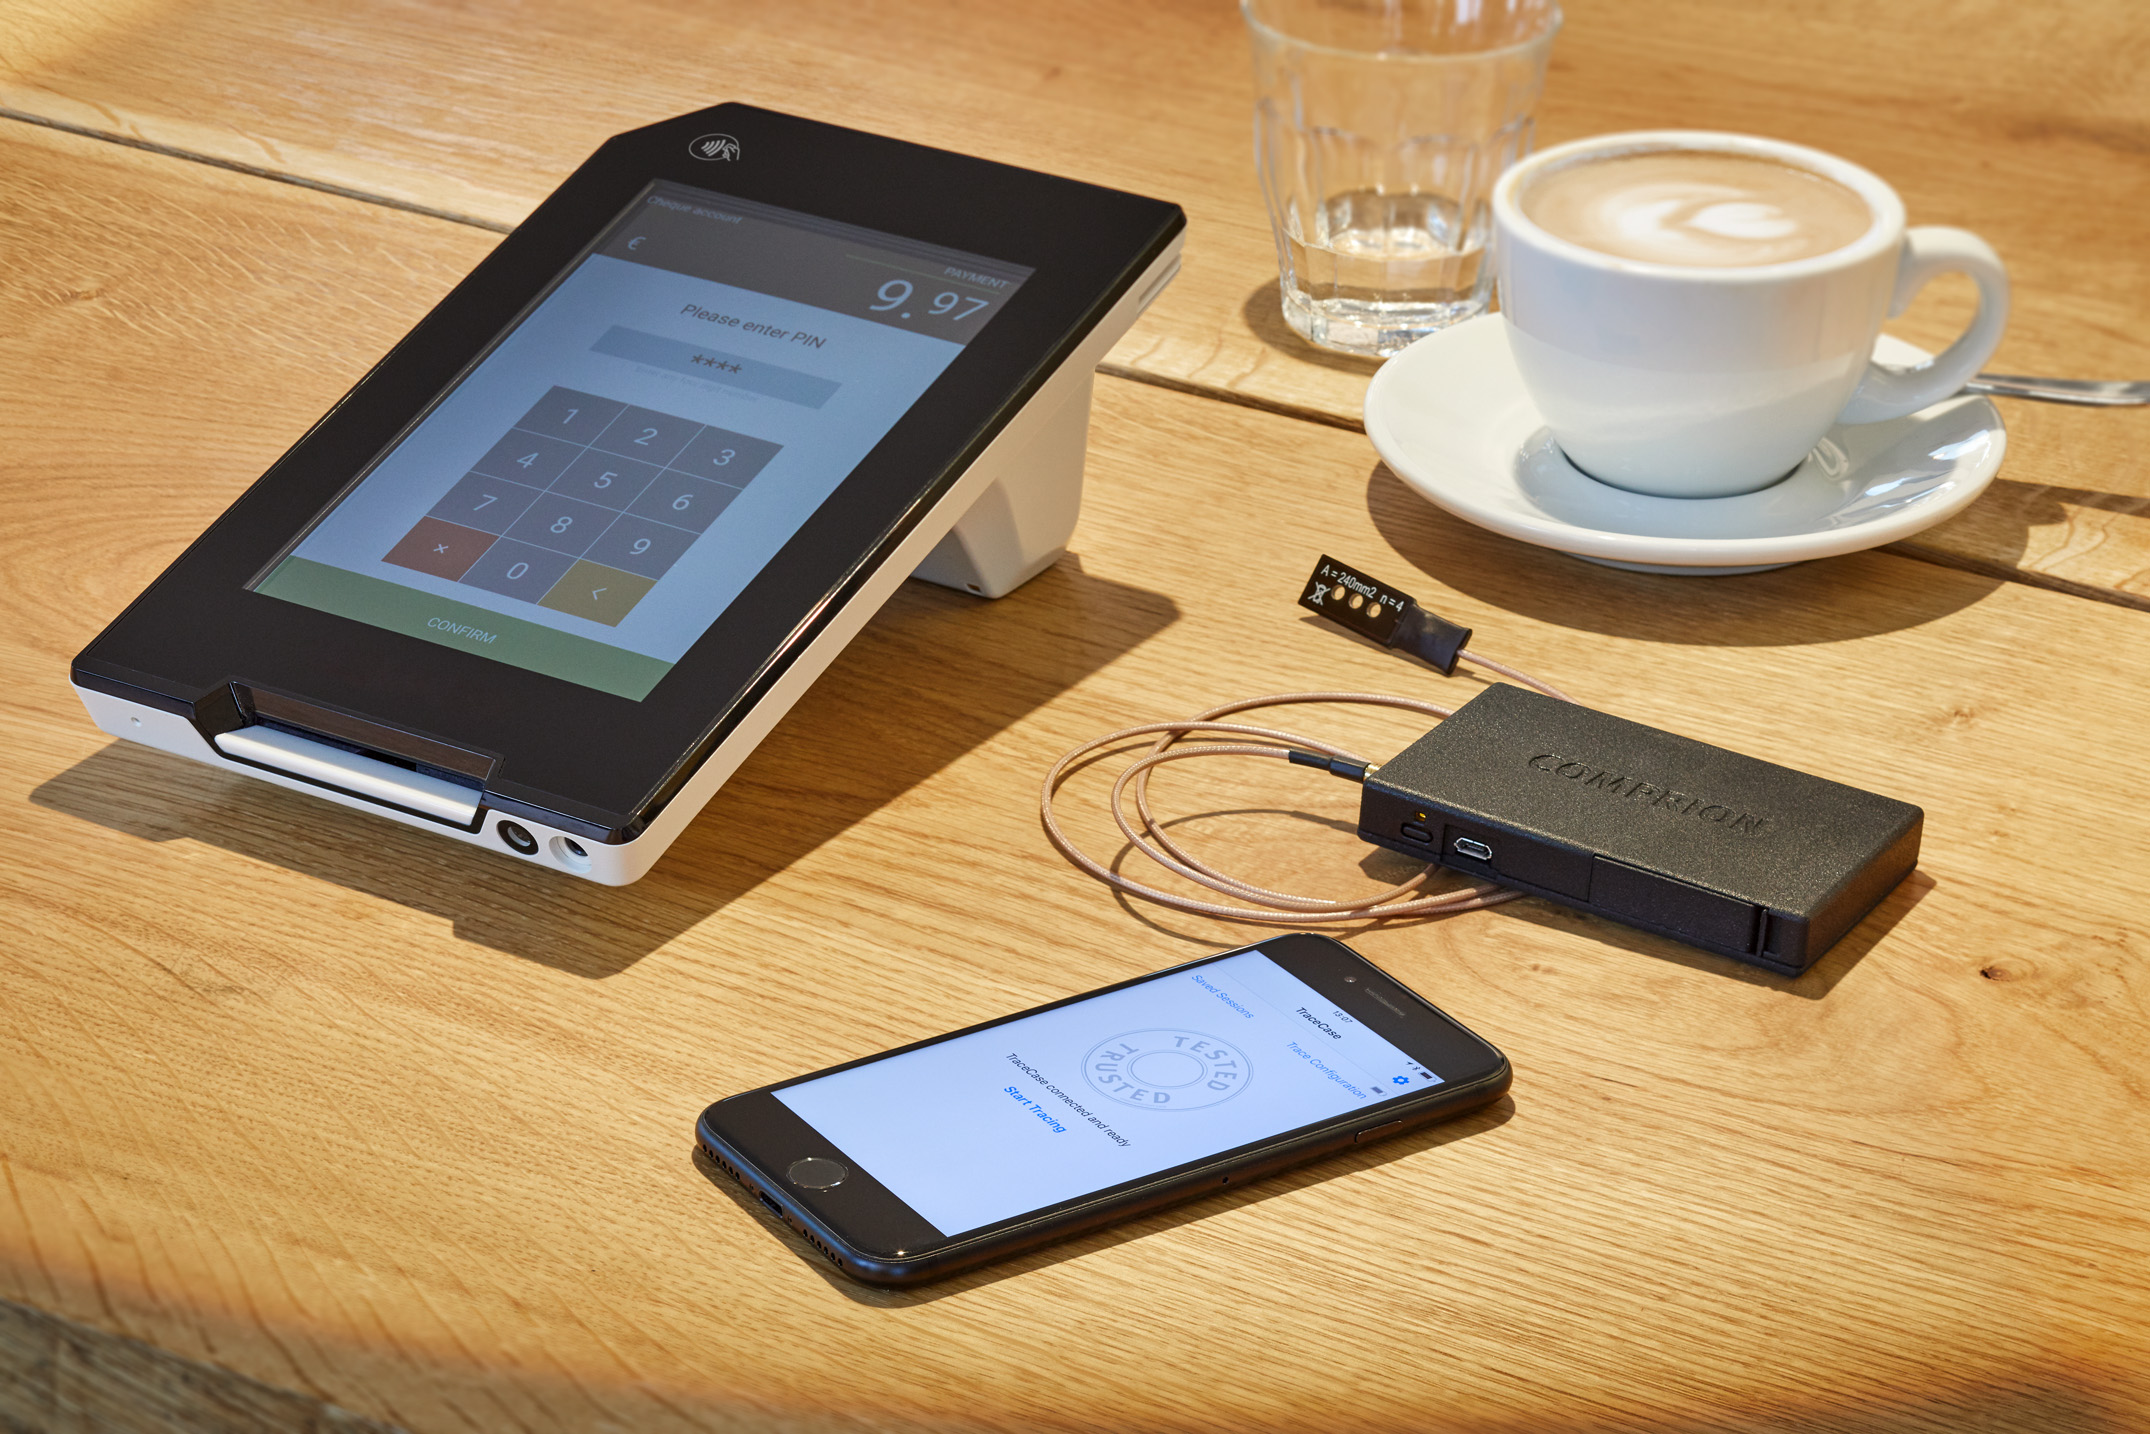 Trace Case a the smallest NFC contactless spy tool